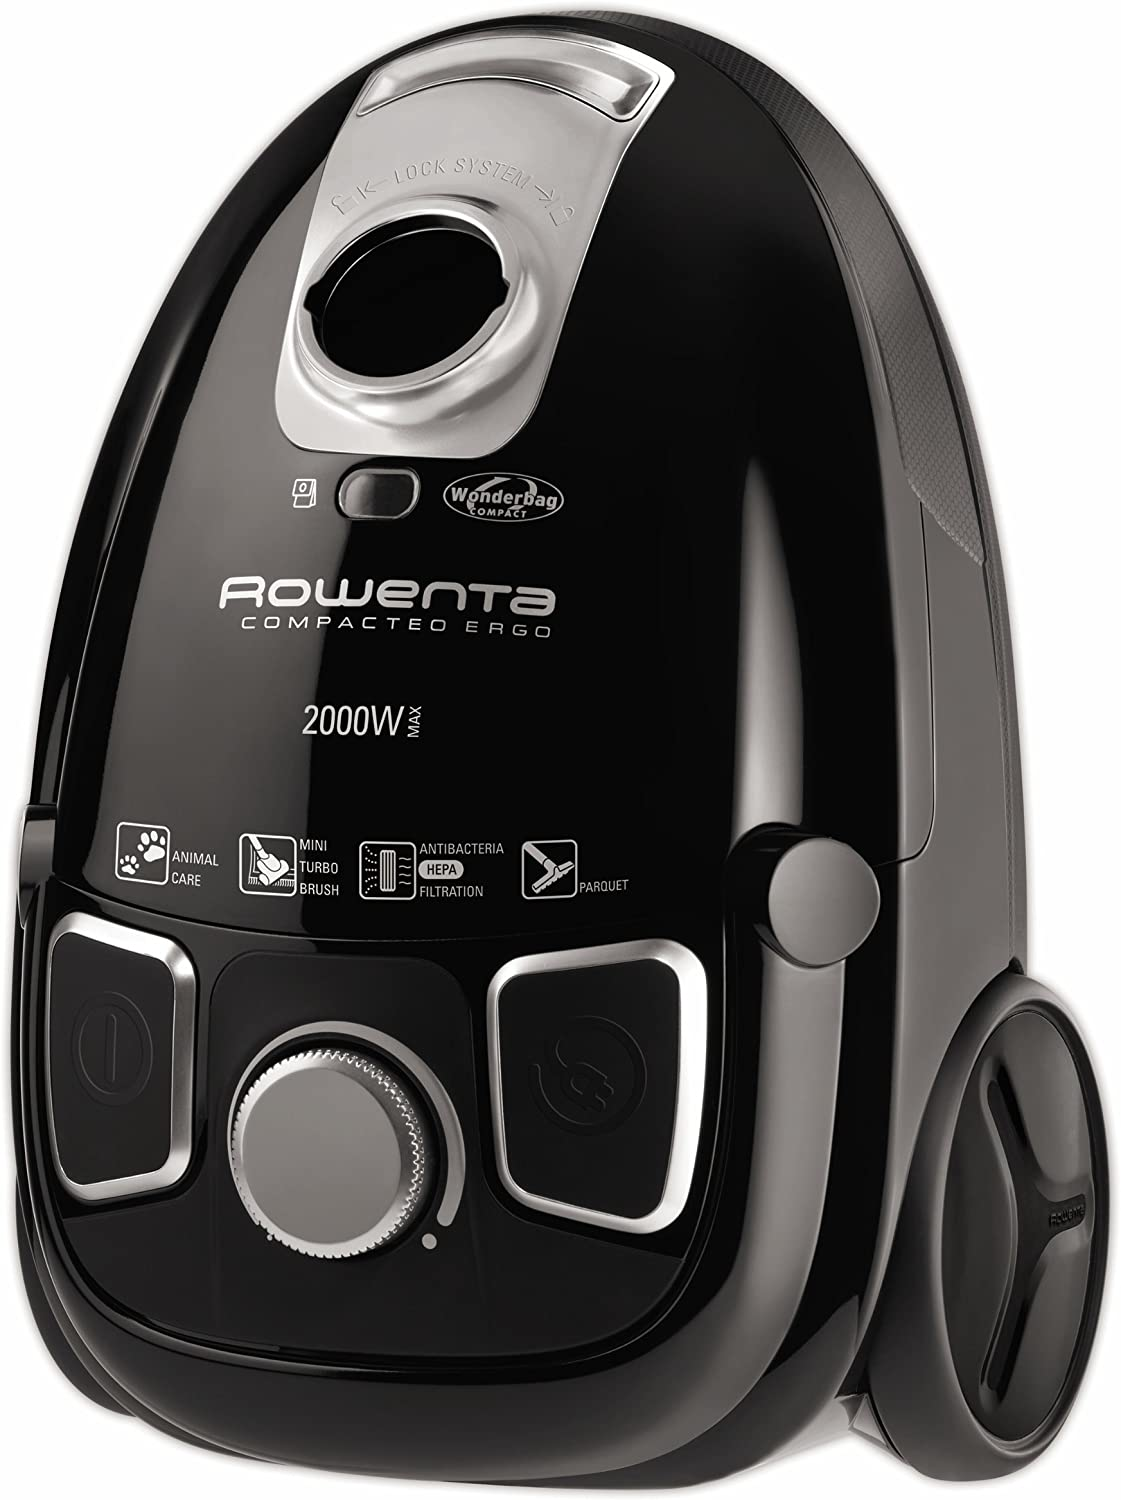 Rowenta RO5295 - Aspiradora, 2000 W, color negro: Amazon.es: Hogar